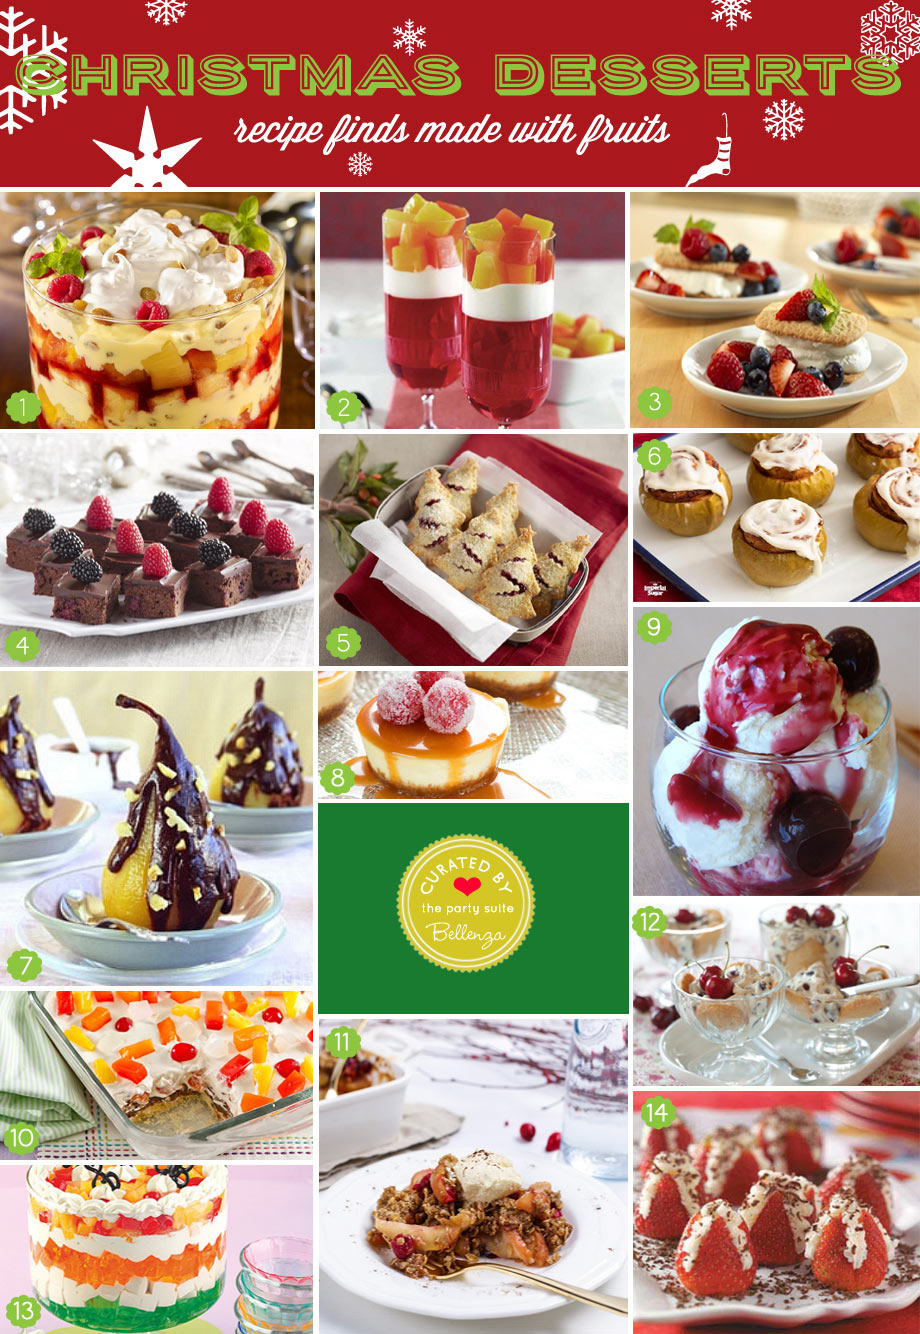 Creative Easy Prep Christmas Desserts Made with Fruits from Apples to Pears to Berries